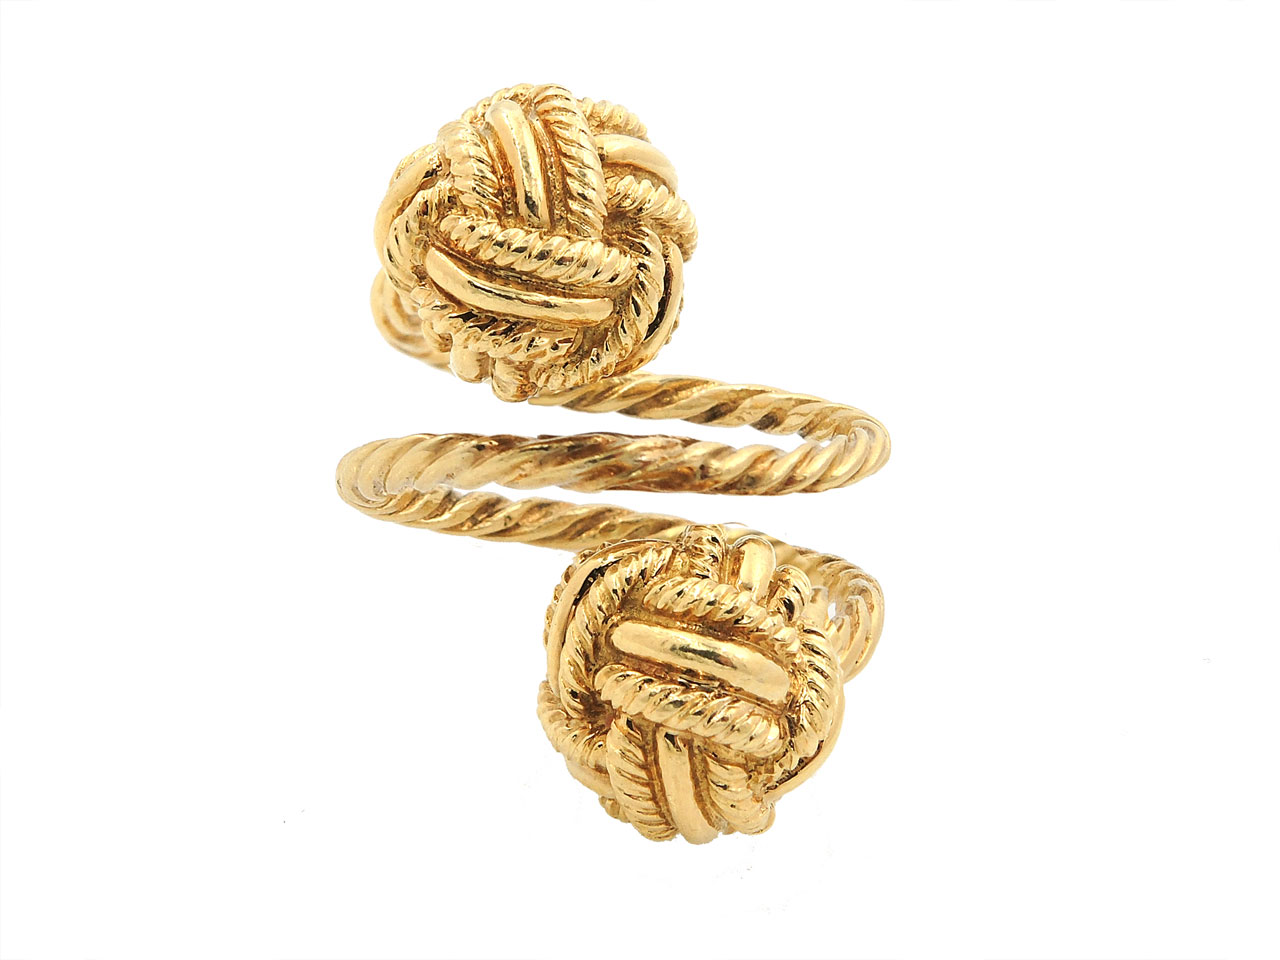 Tiffany Co Schlumberger Knot Ring In 18k Gold For Sale From Beladora Beladora